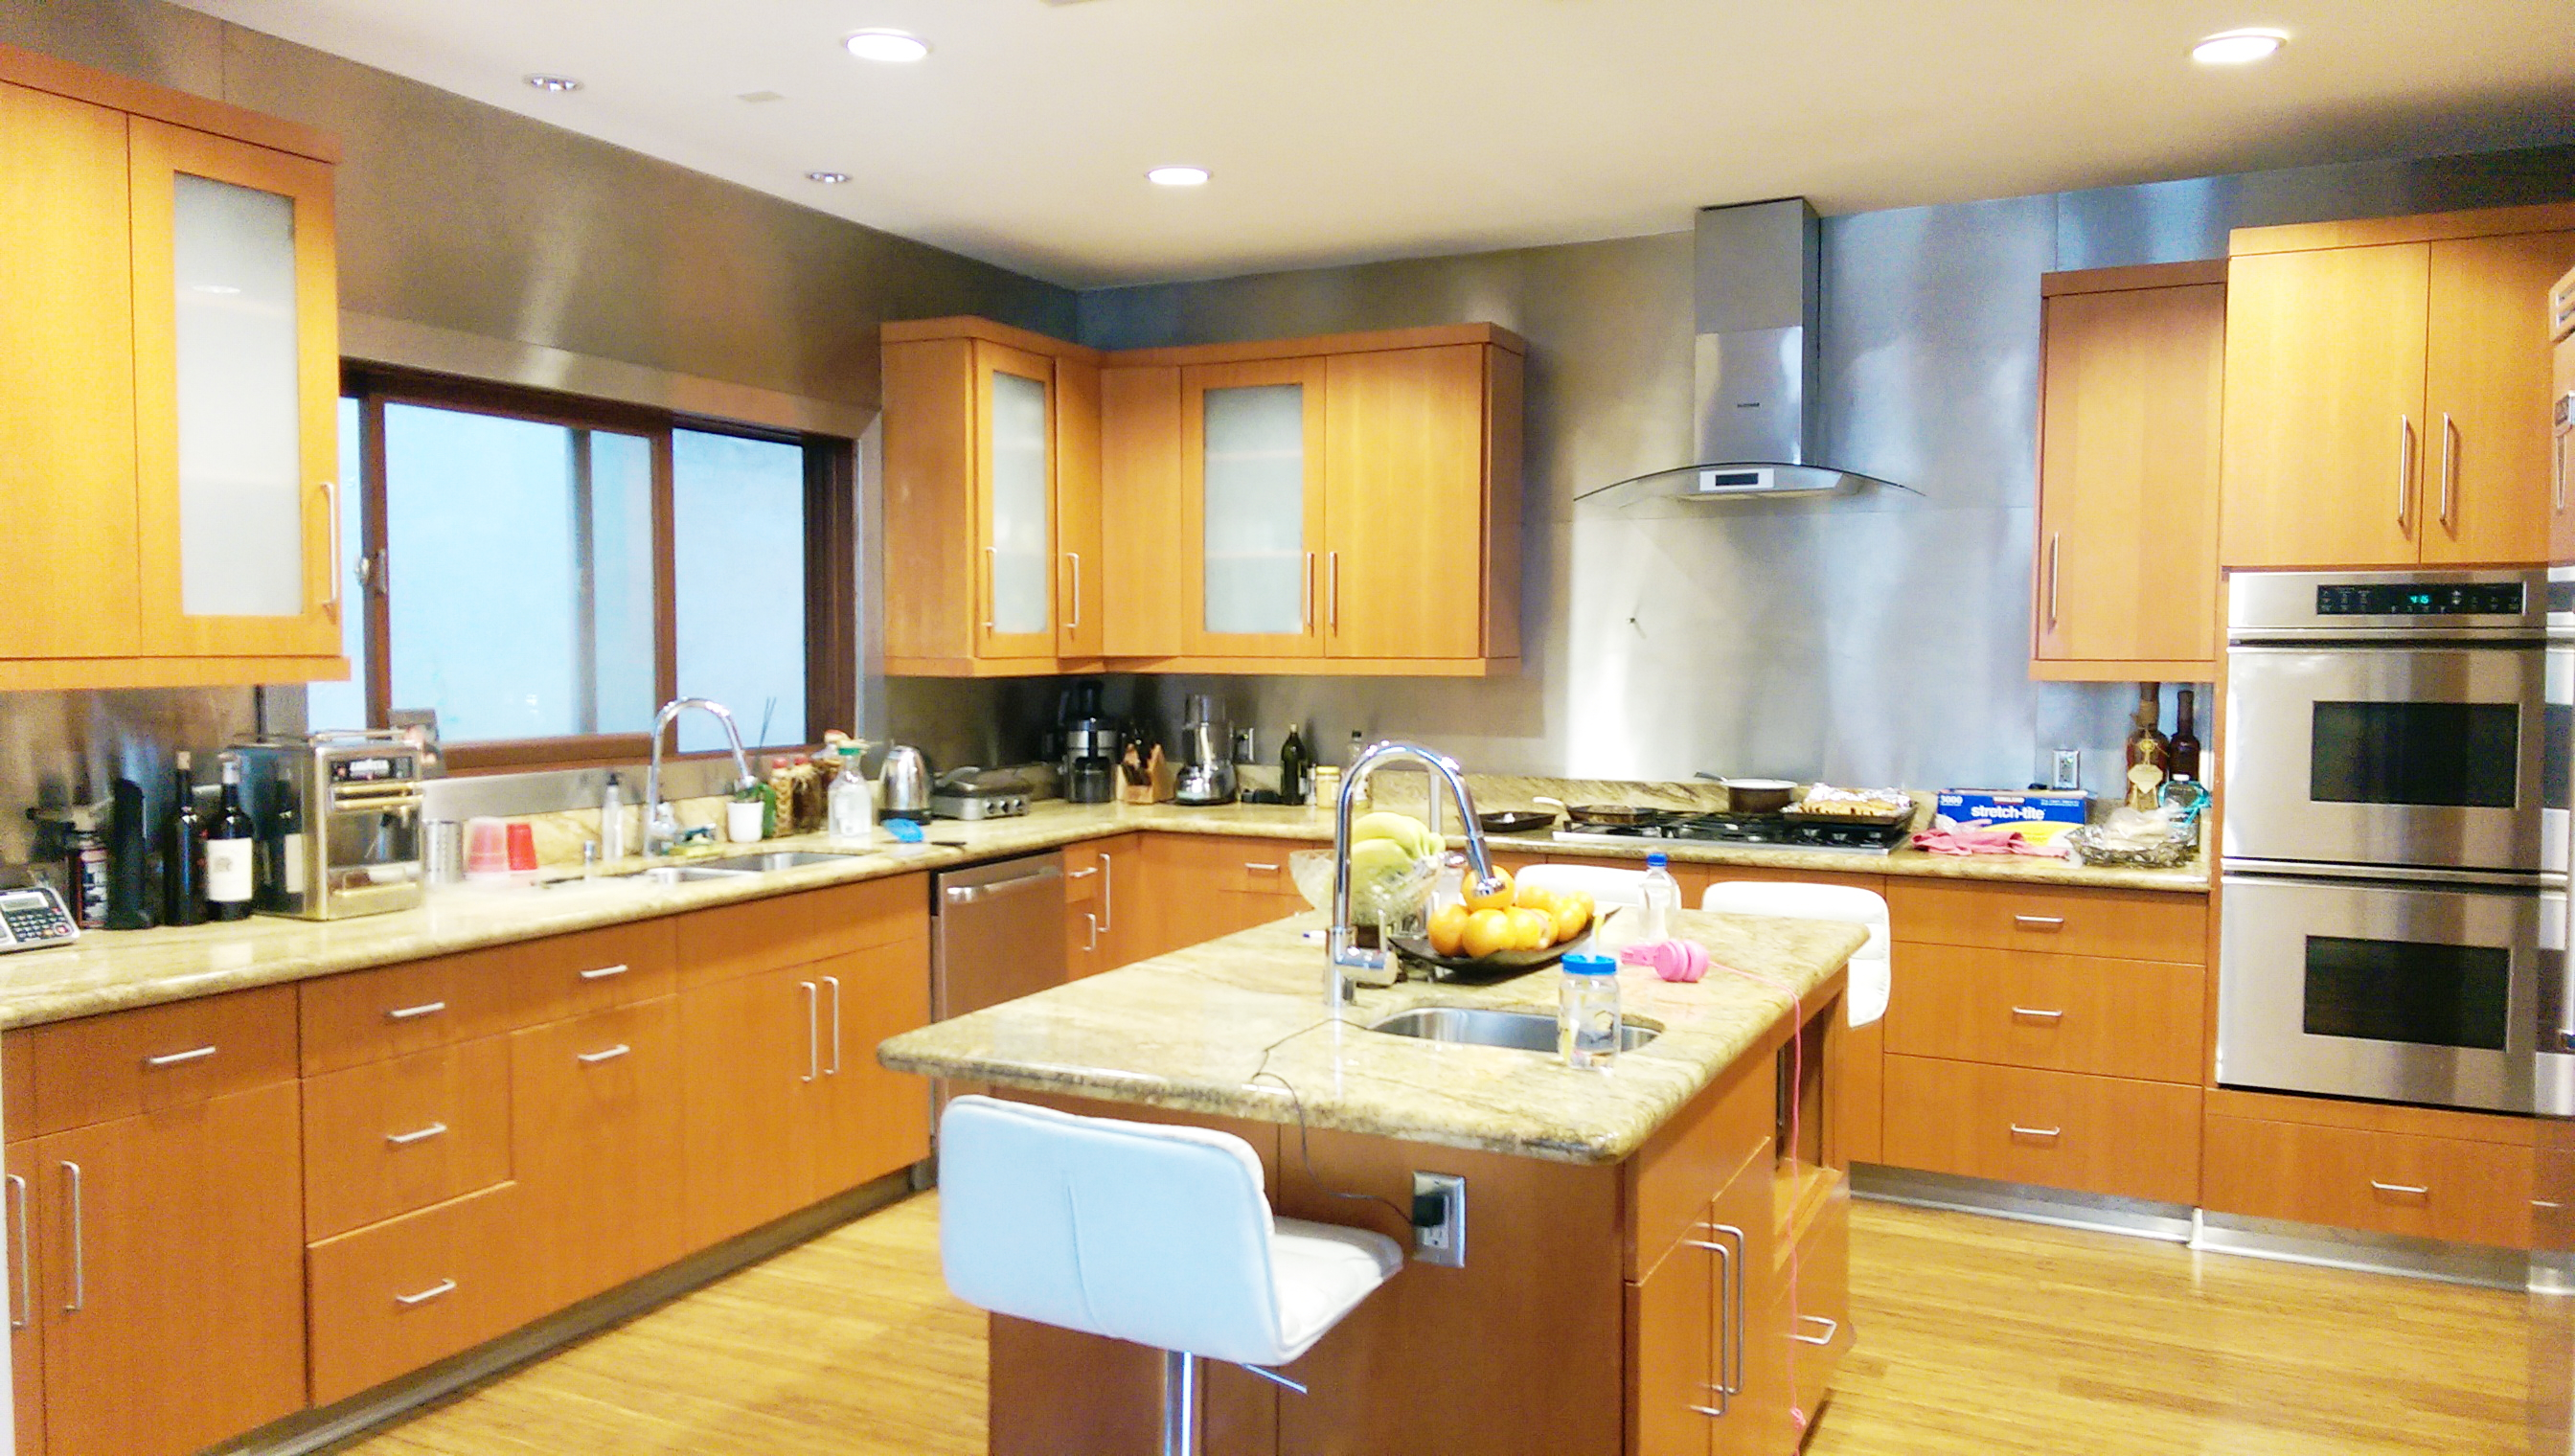 Gourmet Kitchen, Contemporary, Home for Sale, House for Sale in Beverly Hills, Beverly Hills home for Sale